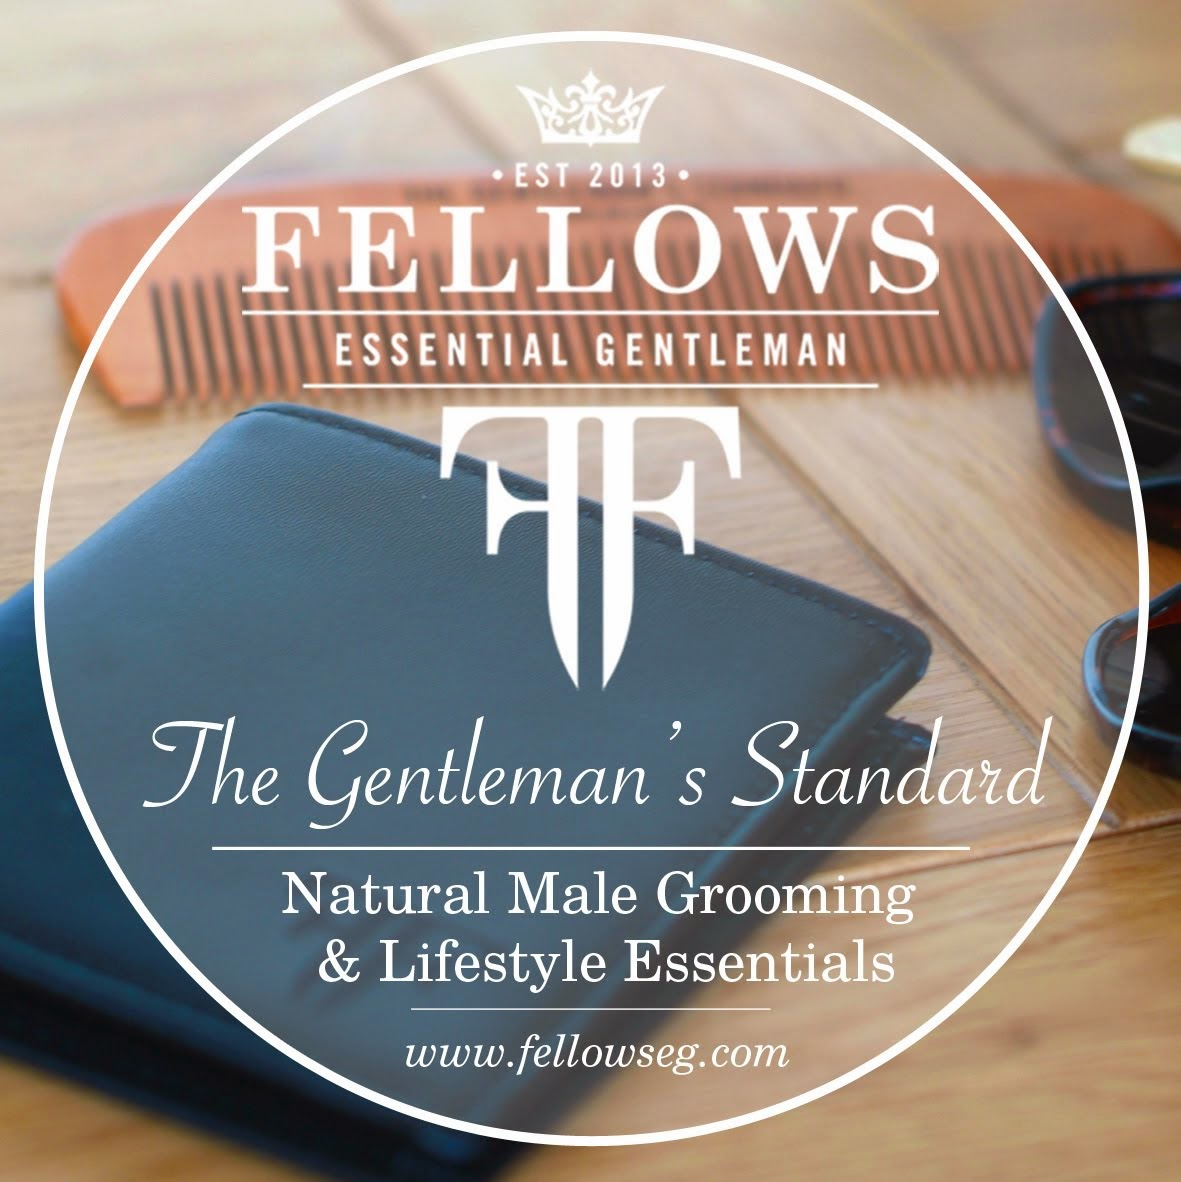 FELLOWS ESSENTIAL GENTLEMAN